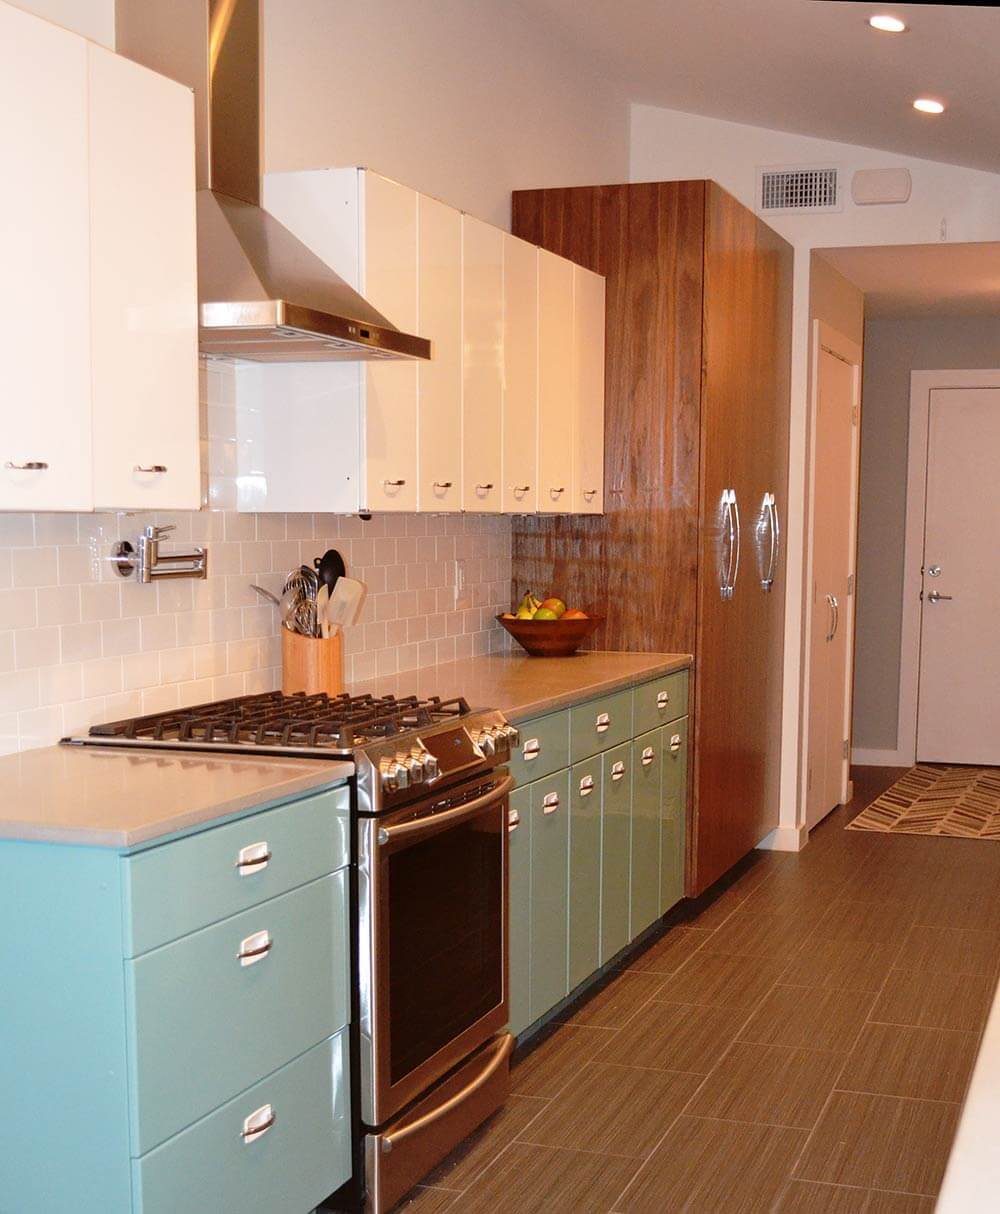 Sam has a great experience with powder coating her vintage Metal kitchen cabinets